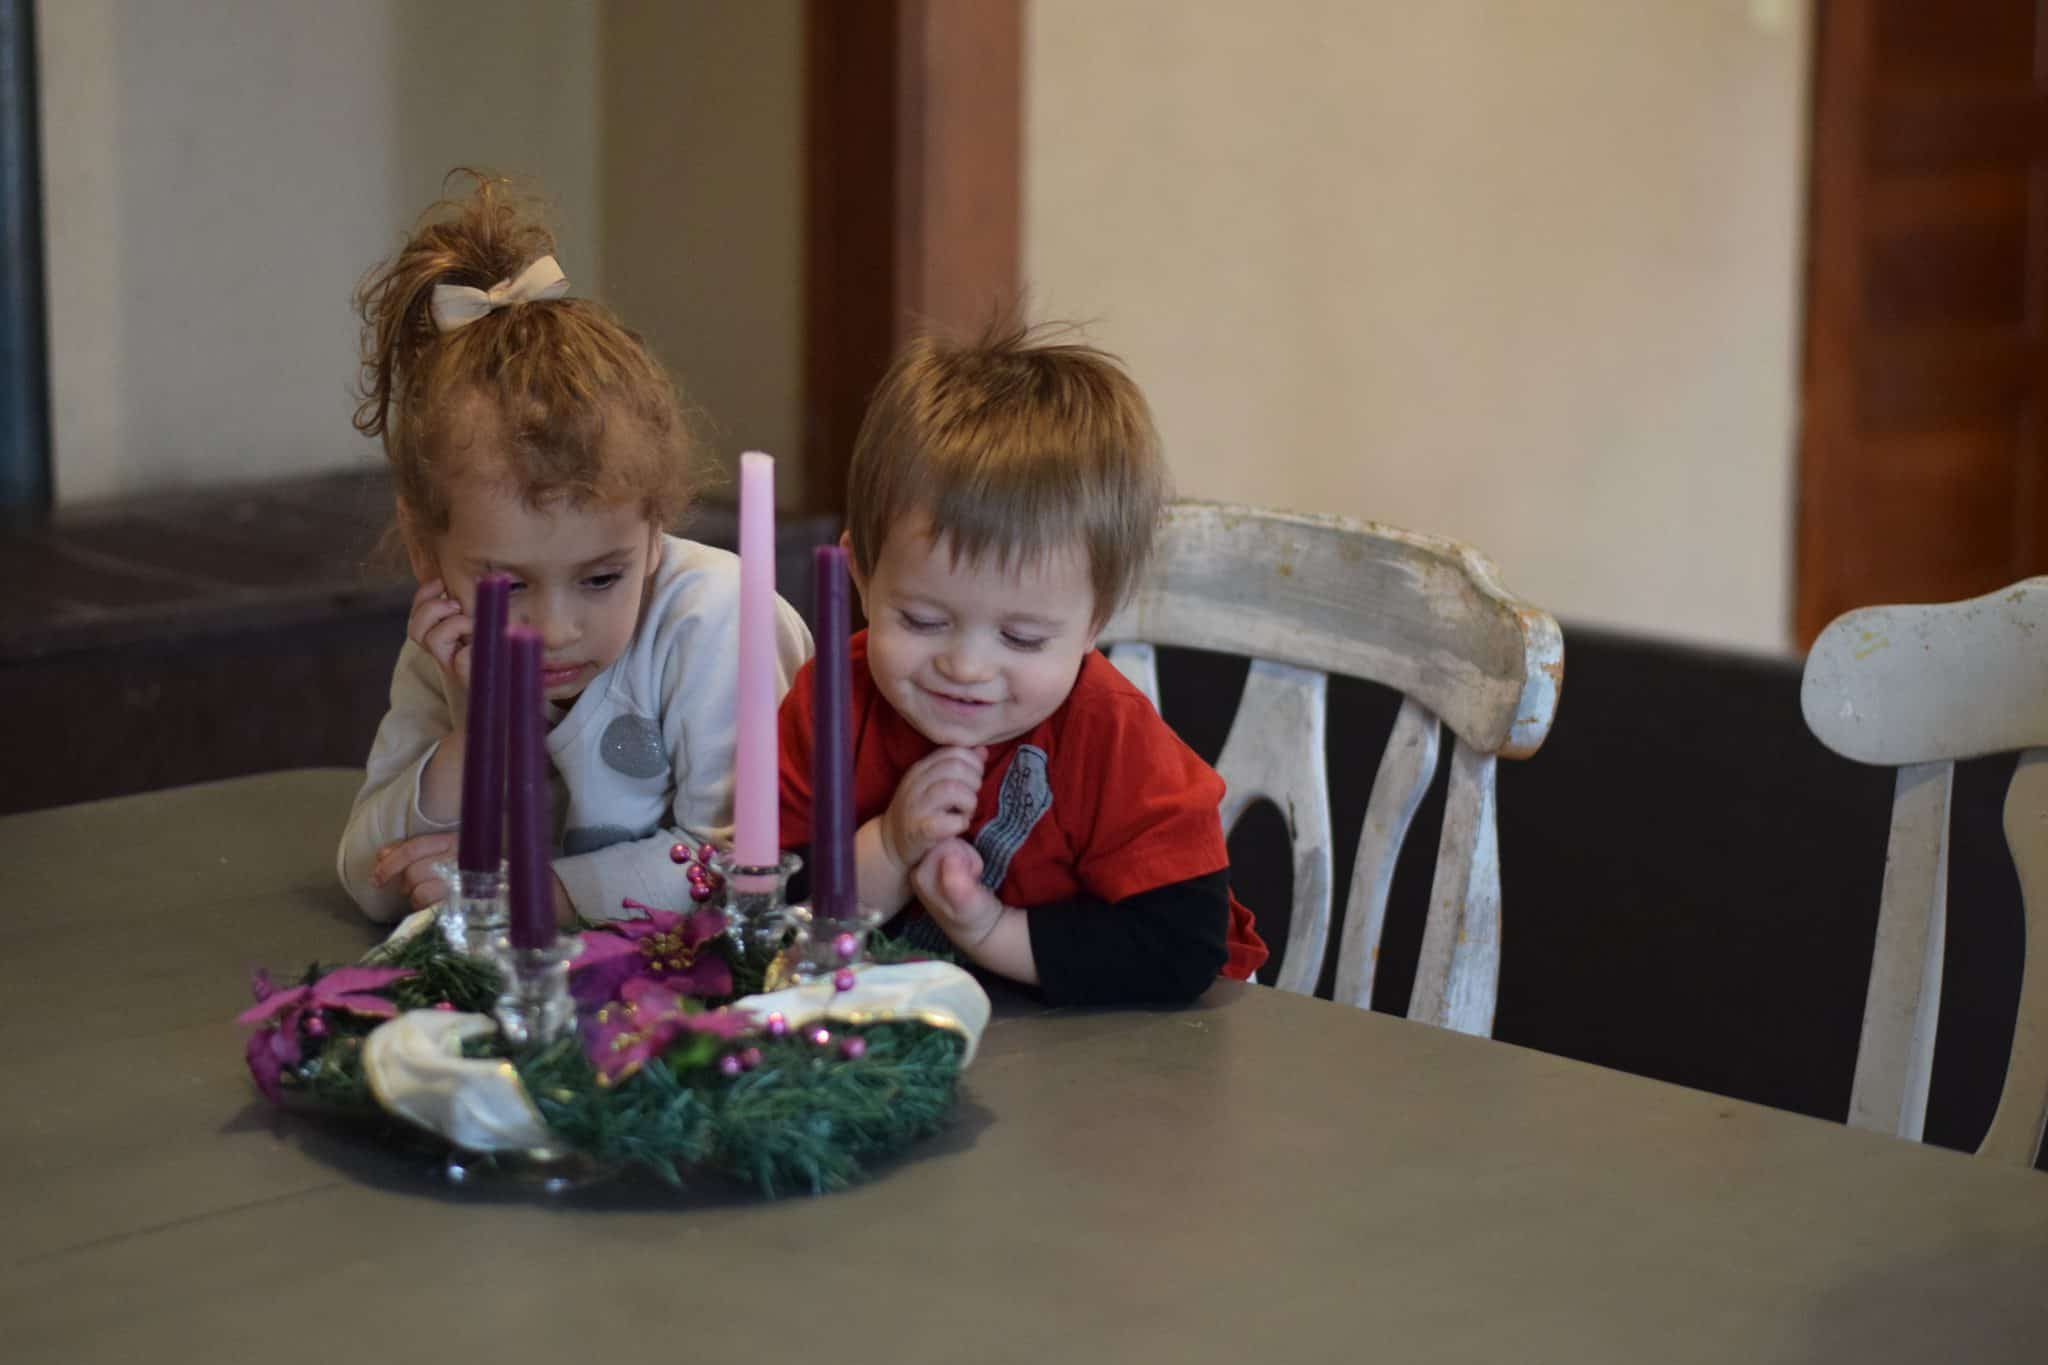 little girl and boy admiring the advent wreath at the dining room table